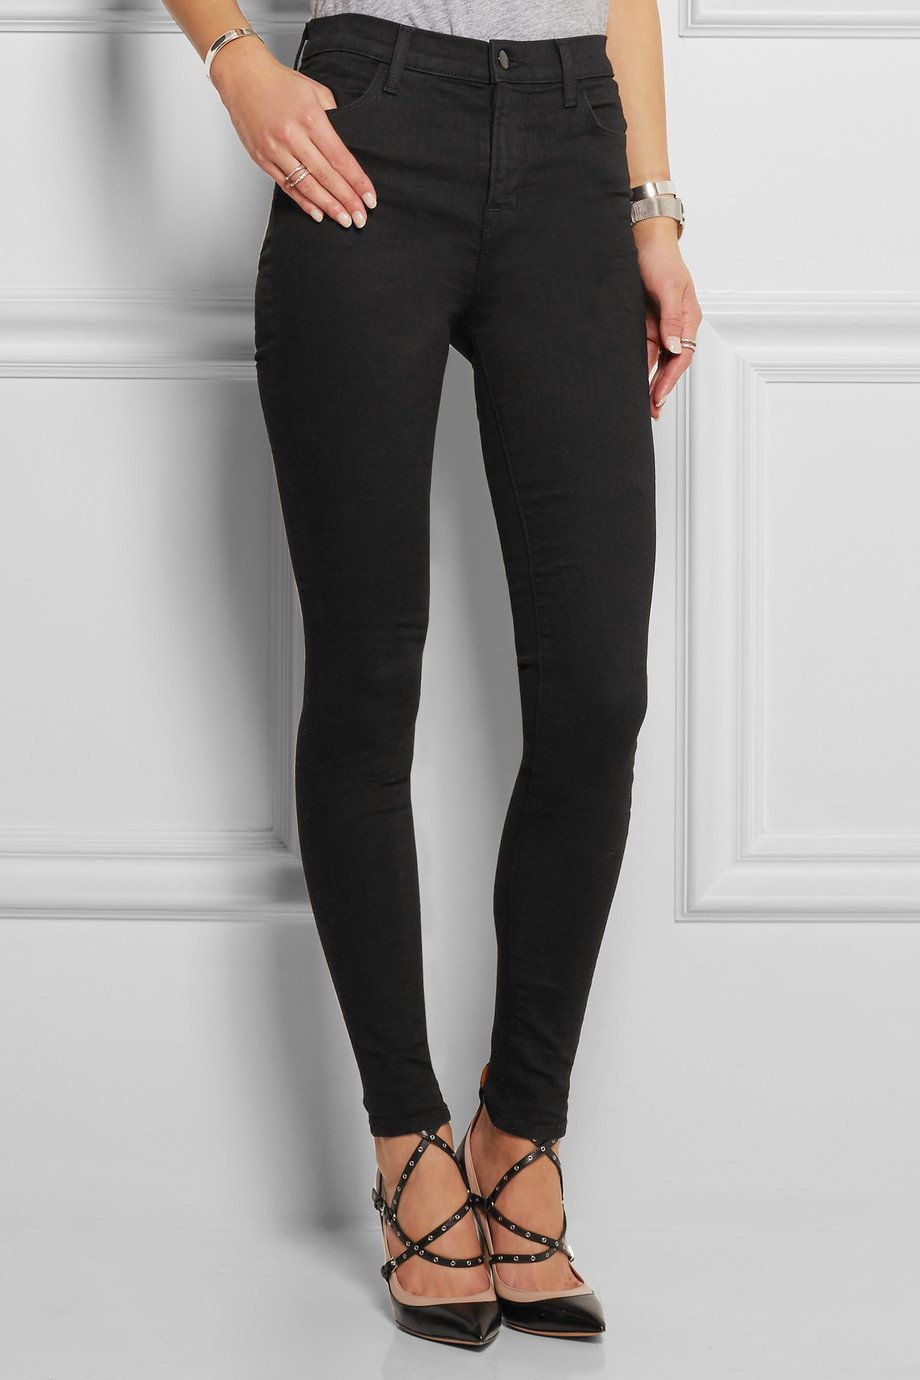 705a4640 The Best Skinny Jeans That Are Flattering On ALL Body Types ...